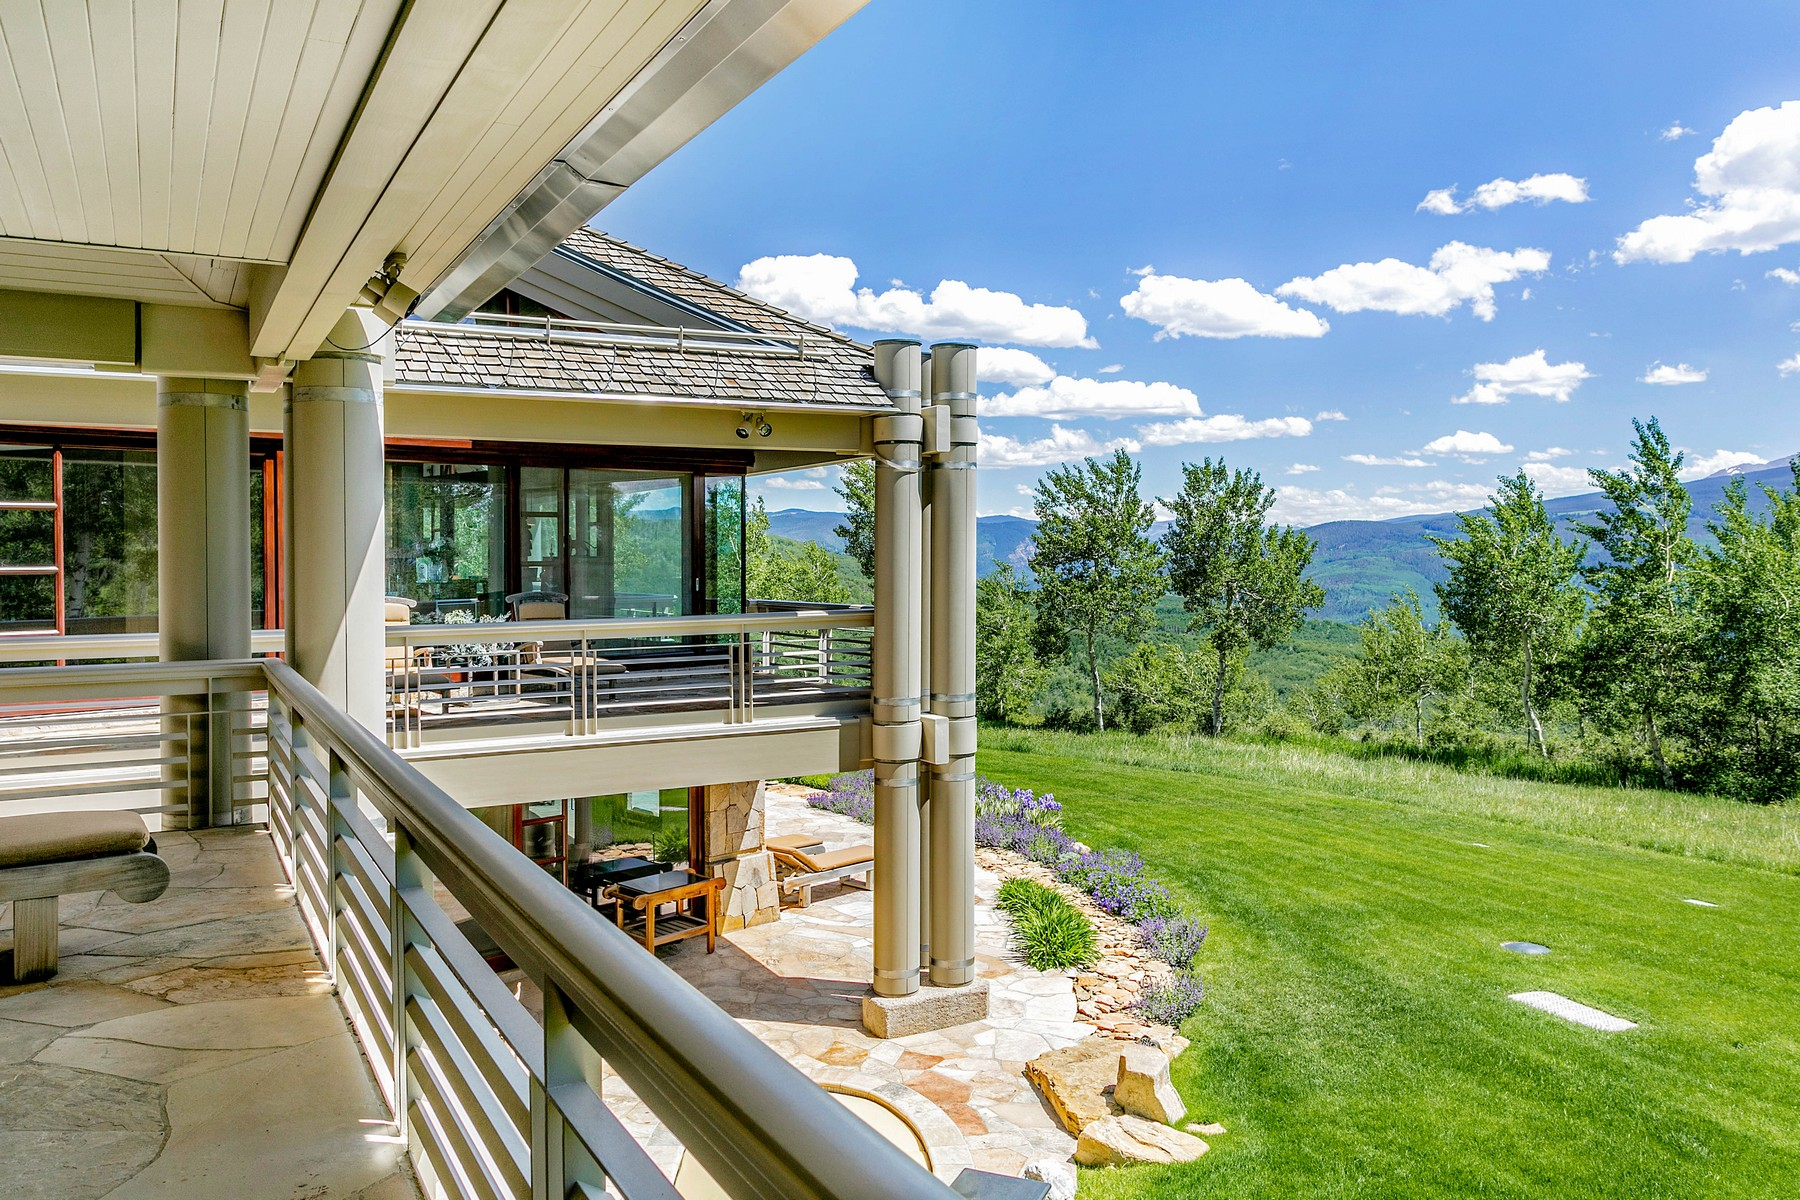 Additional photo for property listing at 56 Rose Crown 56 Rose Crown Beaver Creek, Colorado 81620 United States